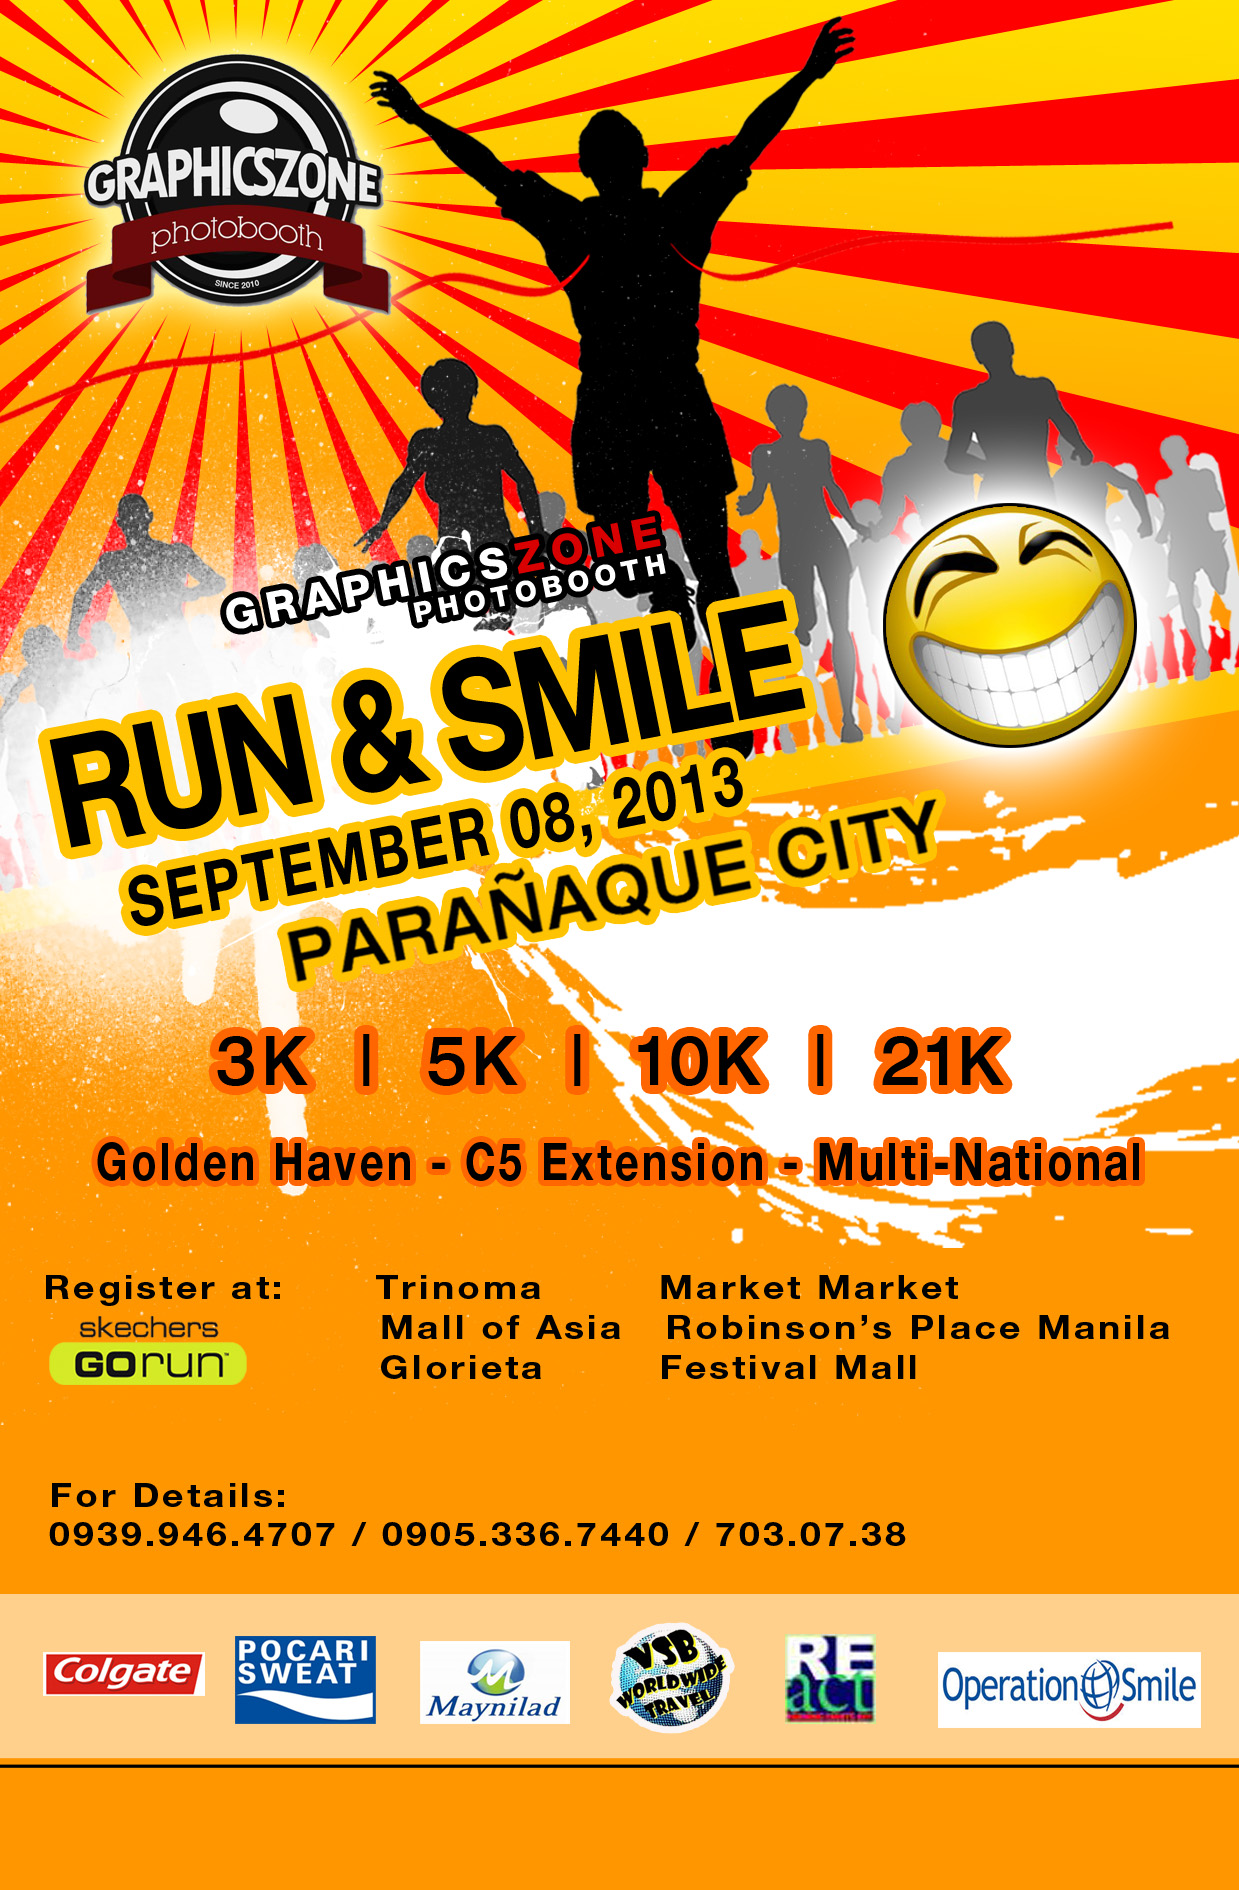 graphics-zone-run-and-smile-2013-poster